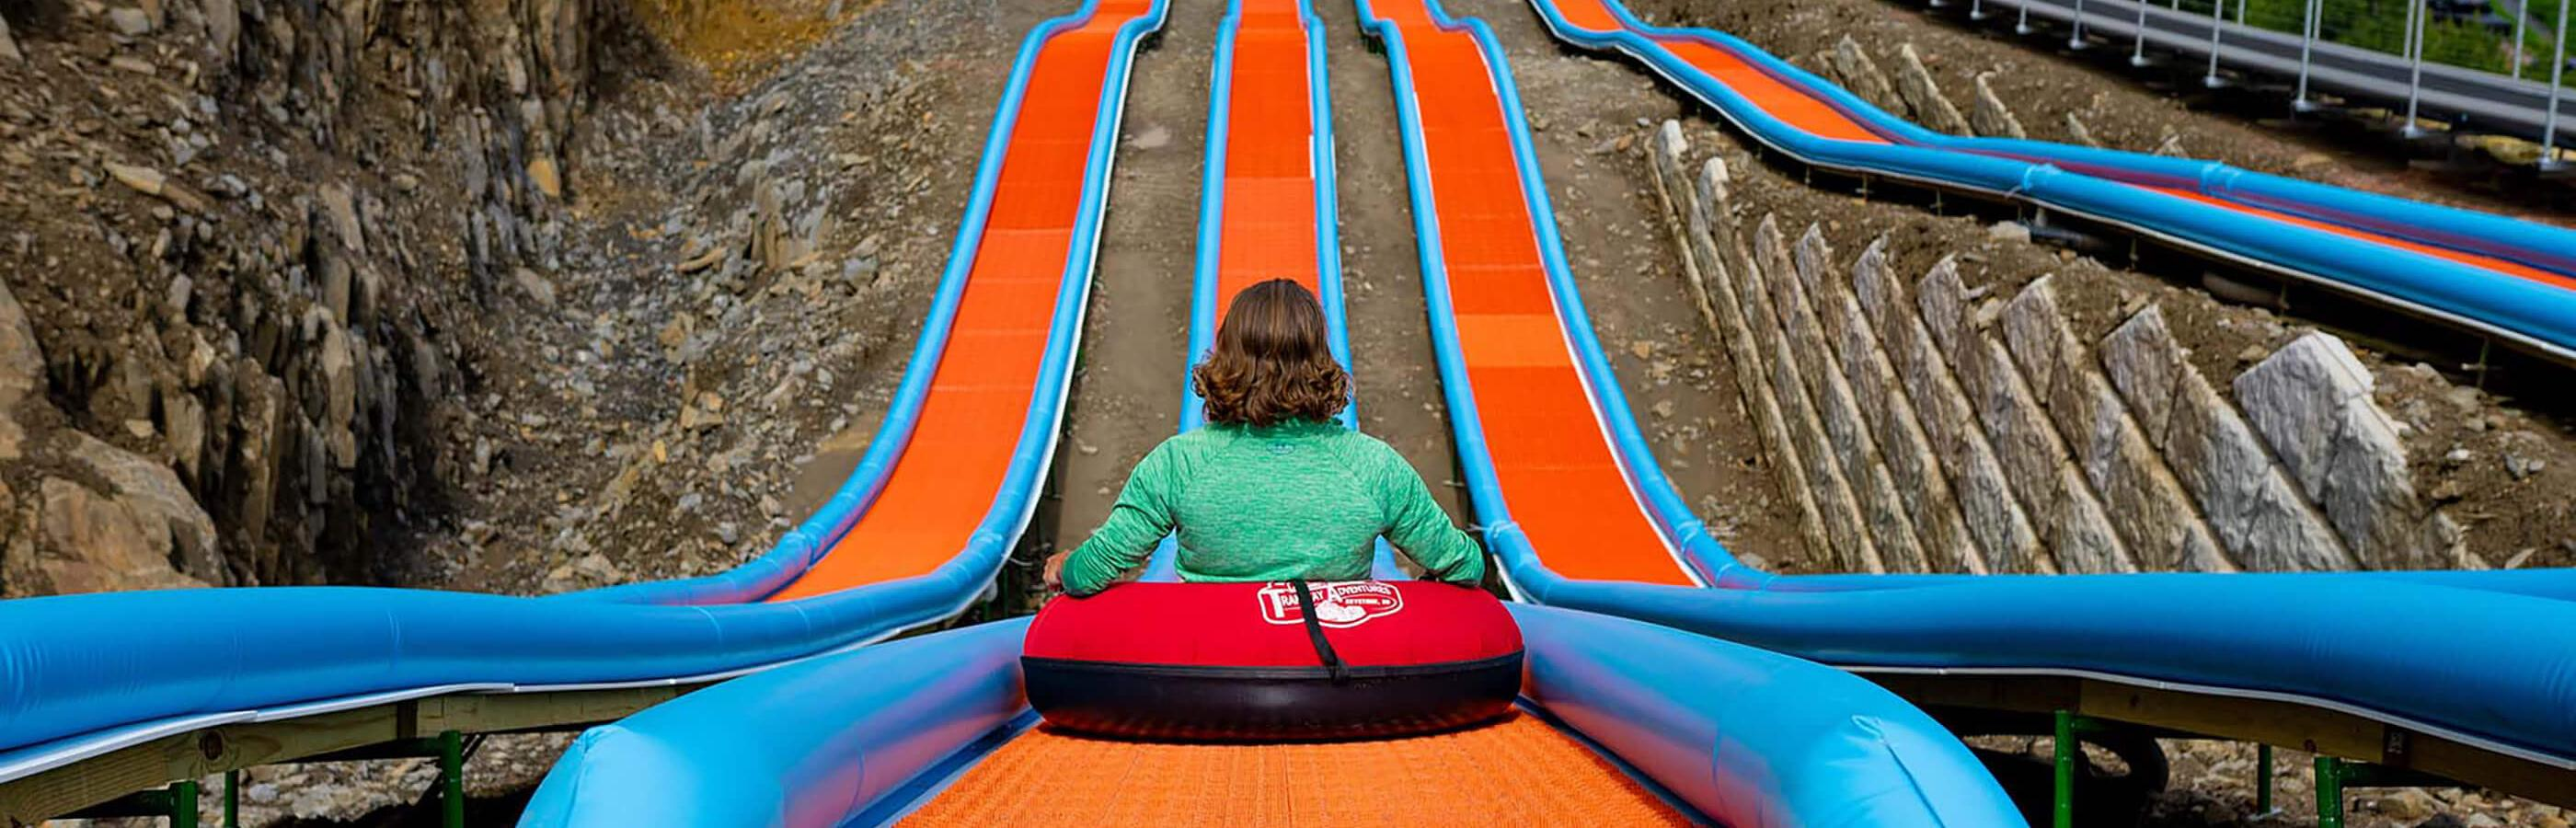 Tubing Hill At Rushmore Tramway